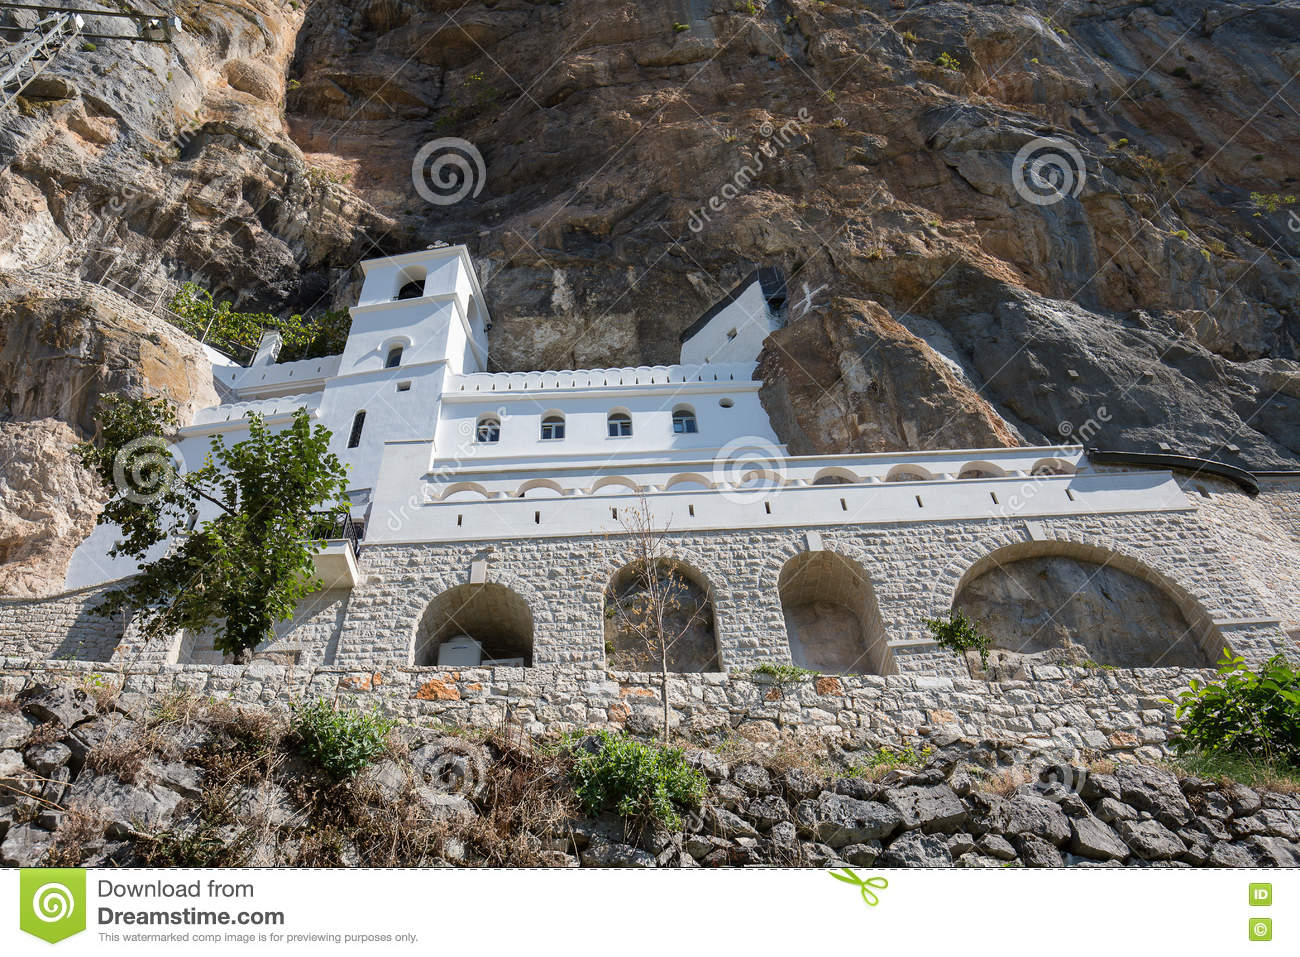 Ostrog - the most famous monastery in the Balkans 79